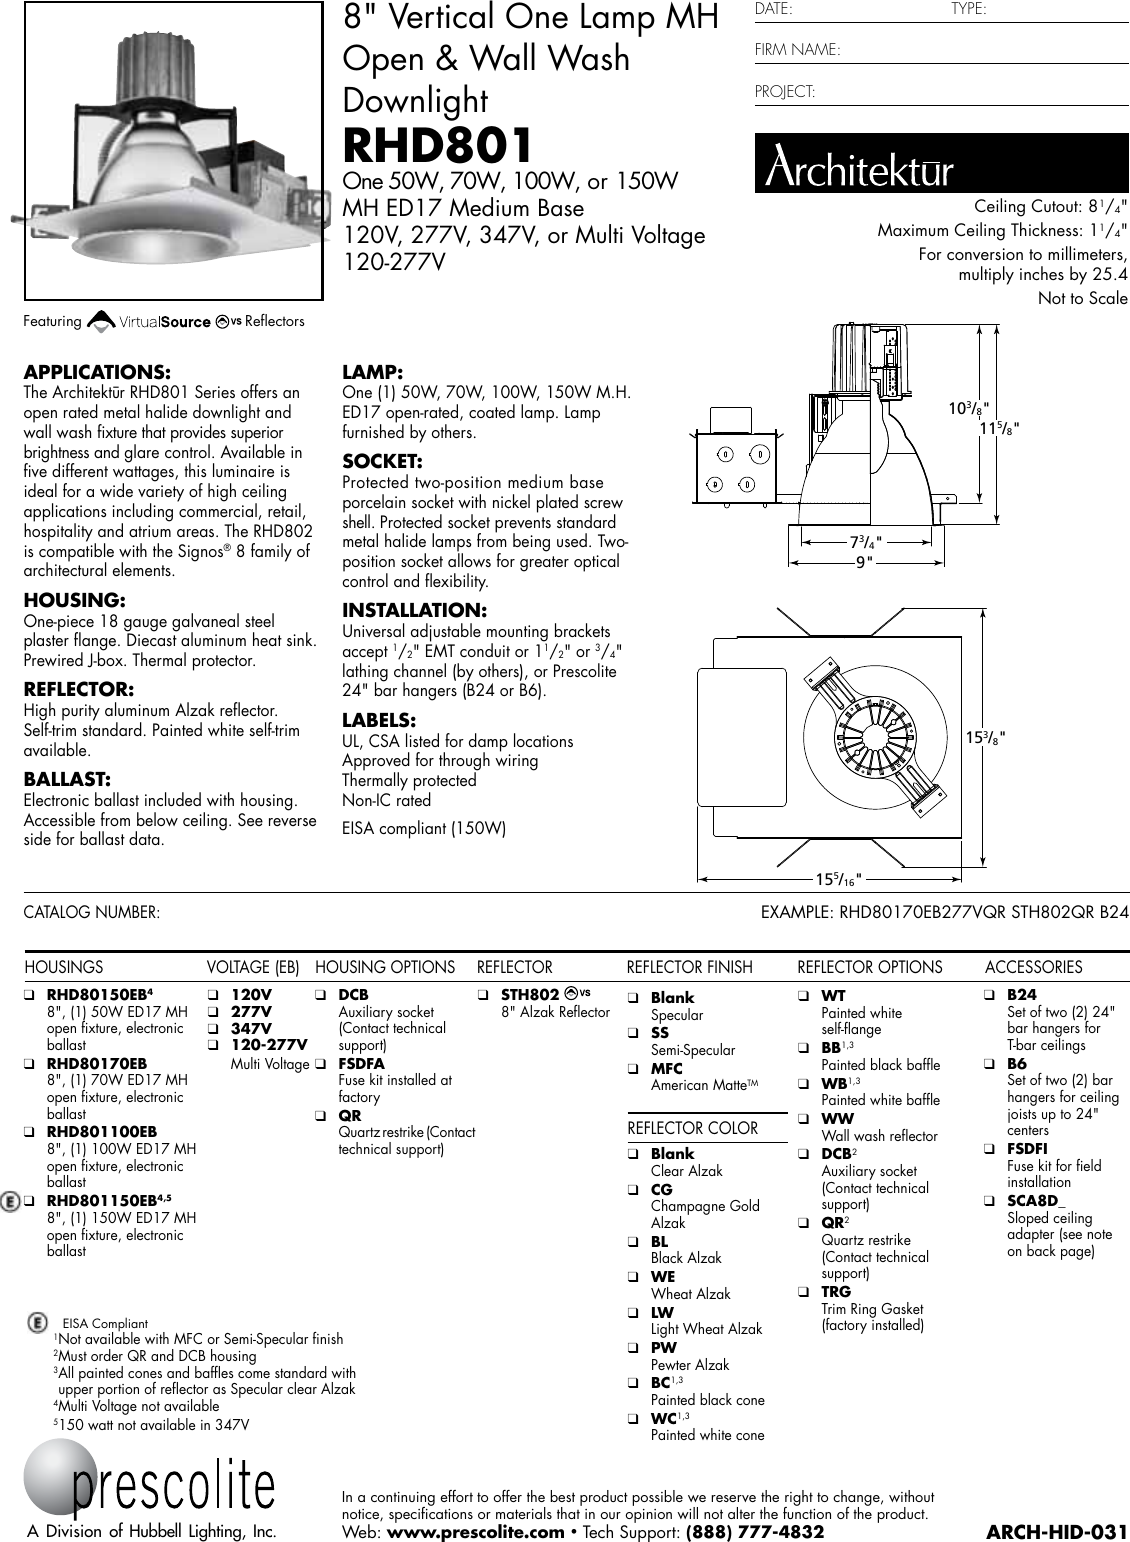 Arch Hid 031 Light 277v Electrical Wiring Diagrams Archhid031418166164 User Guide Page 1